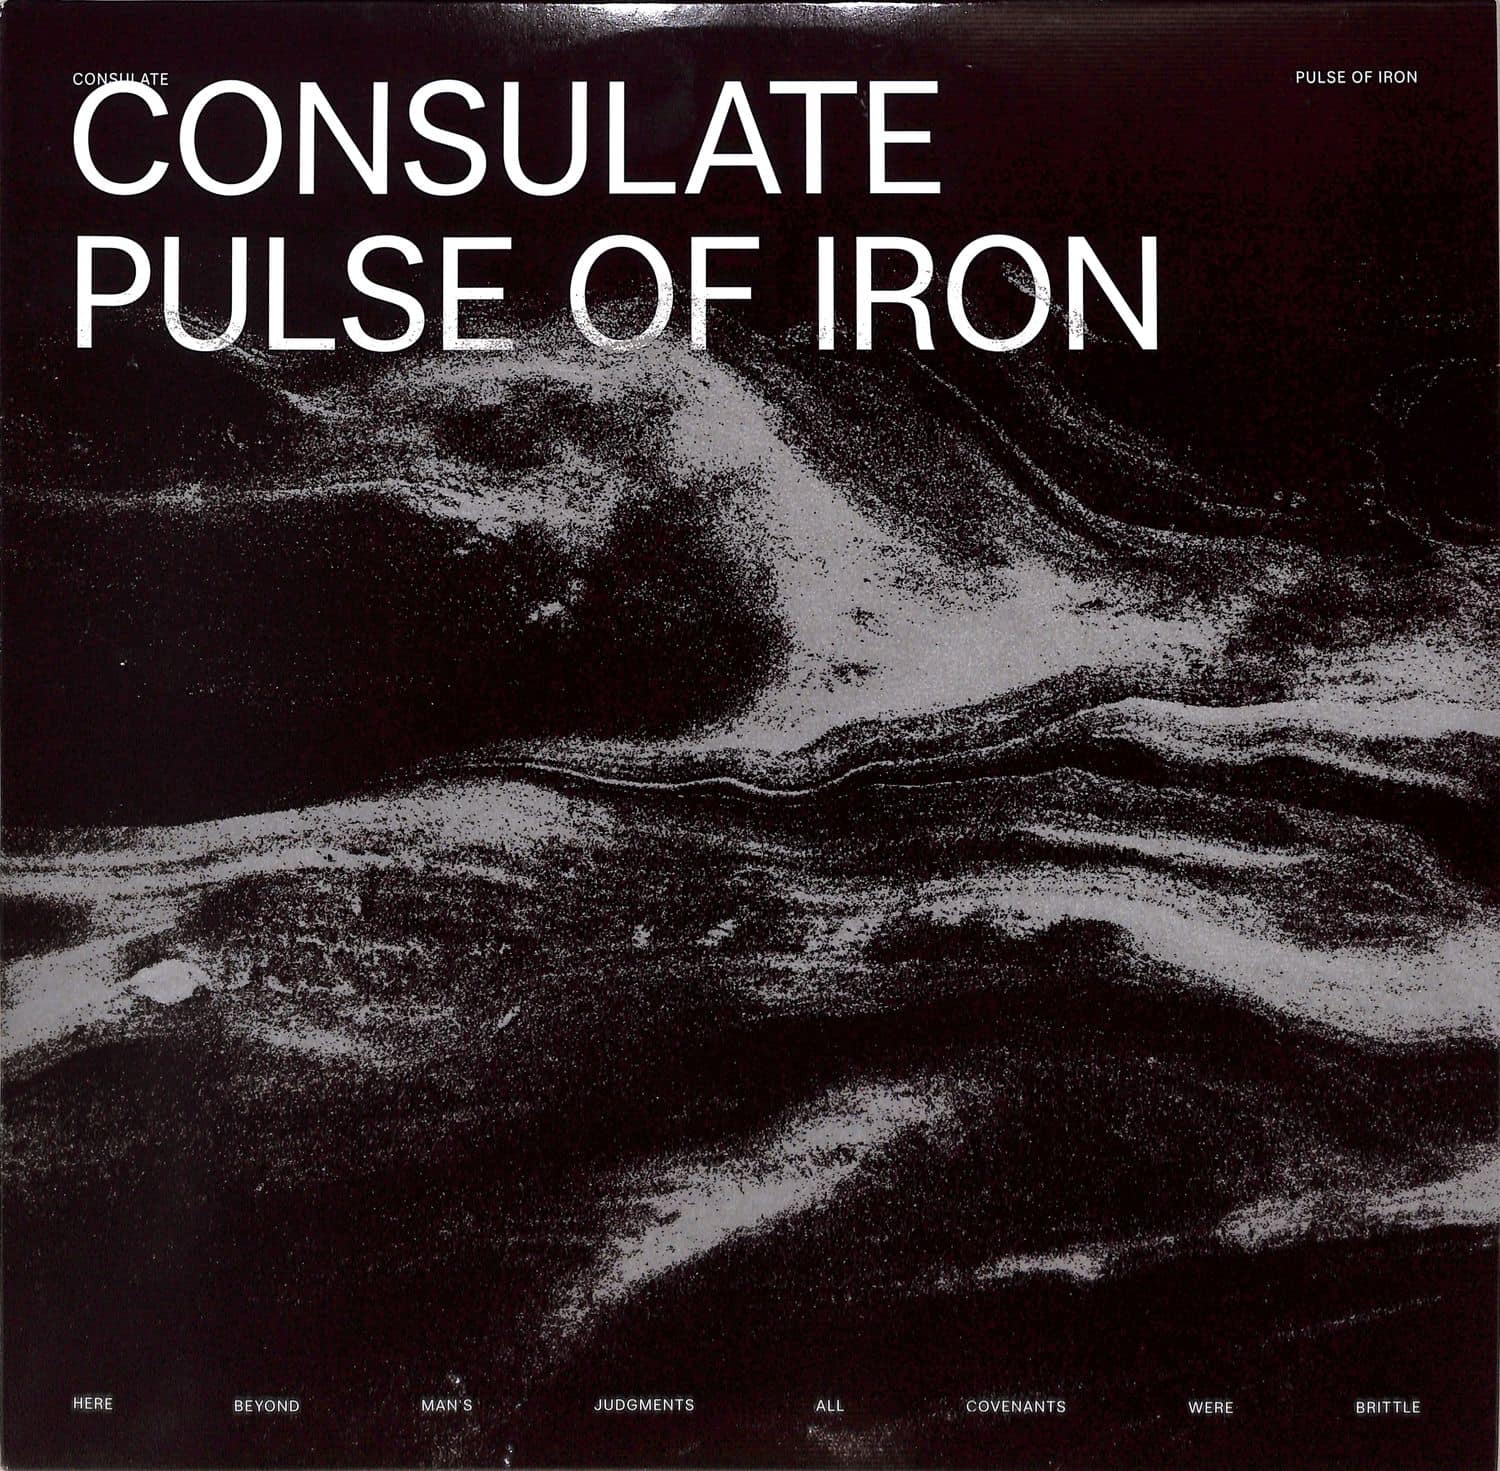 Consulate - THE PULSE OF IRON